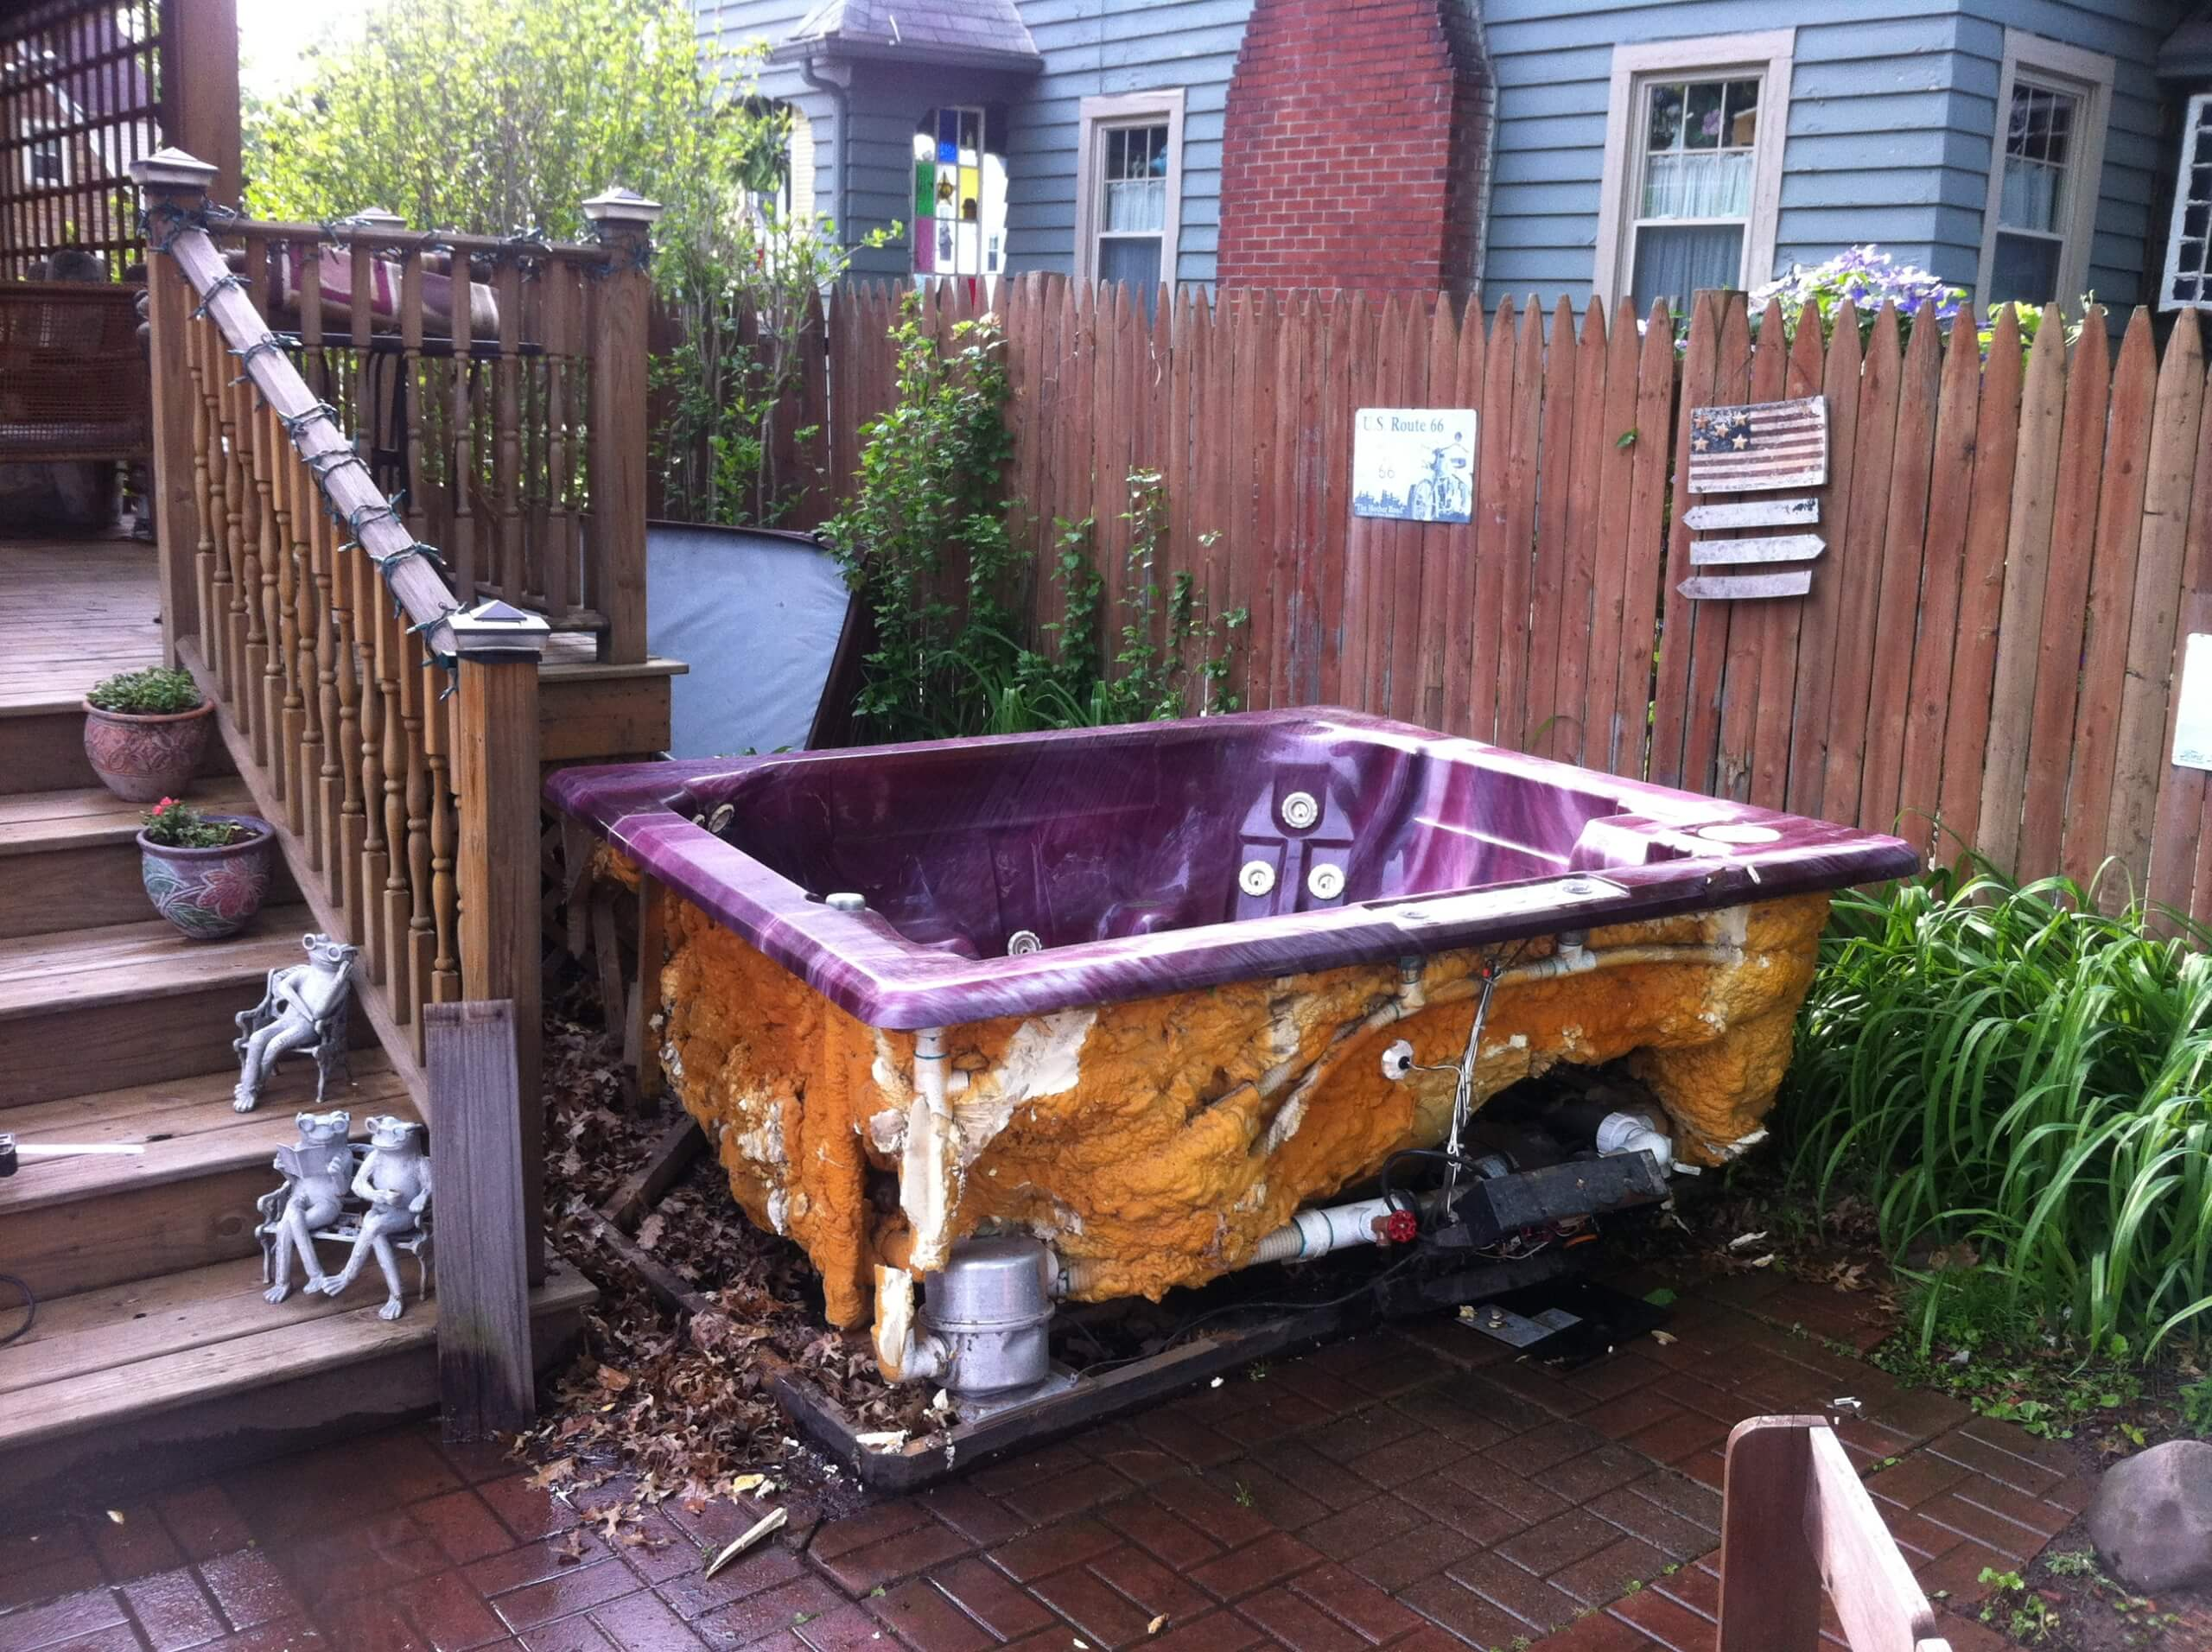 hot tub removal, spa removal, hot tub junk, hot tub broken, express junk removal